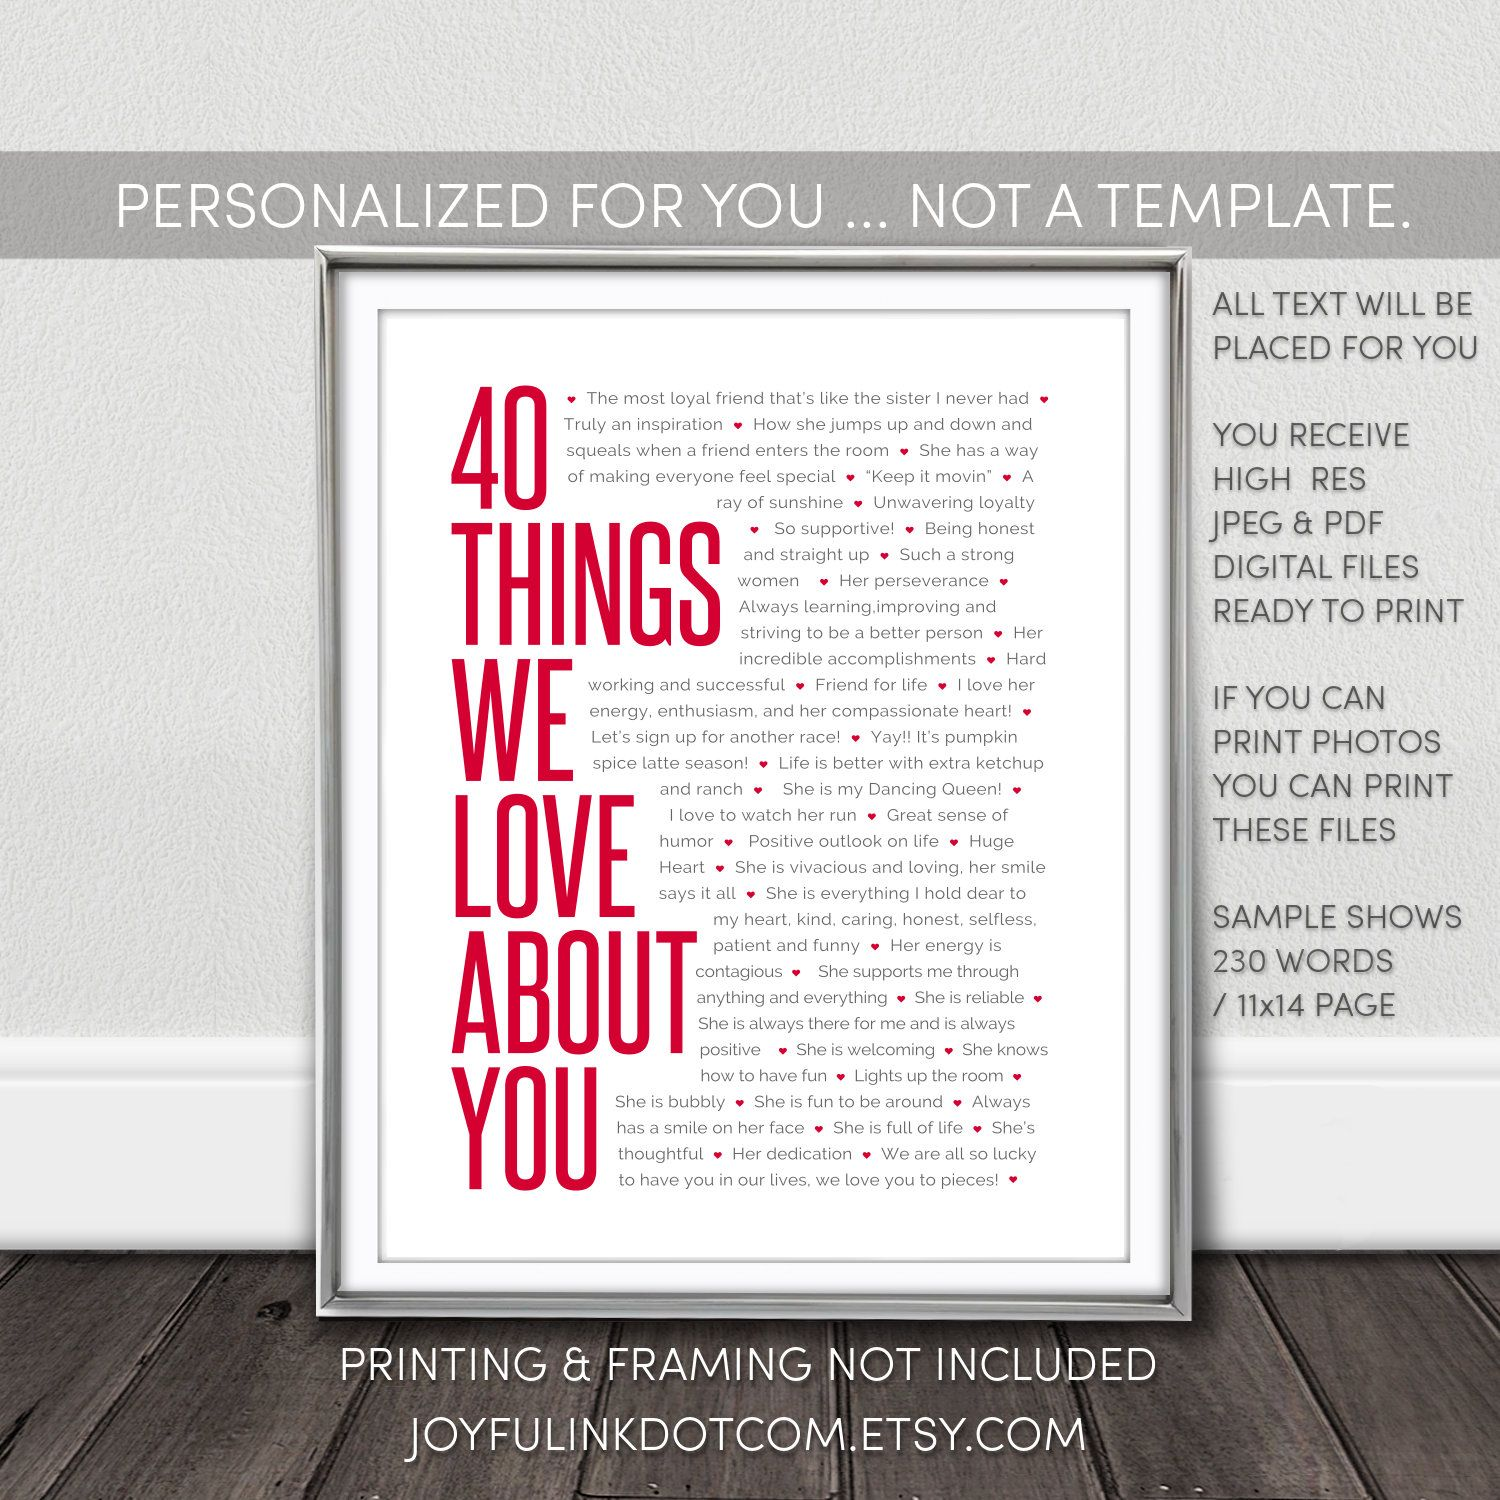 40 Things We Love About You Printable Personalized 40th Etsy In 2021 40th Birthday Gifts 40th Birthday Gifts For Women 40th Birthday